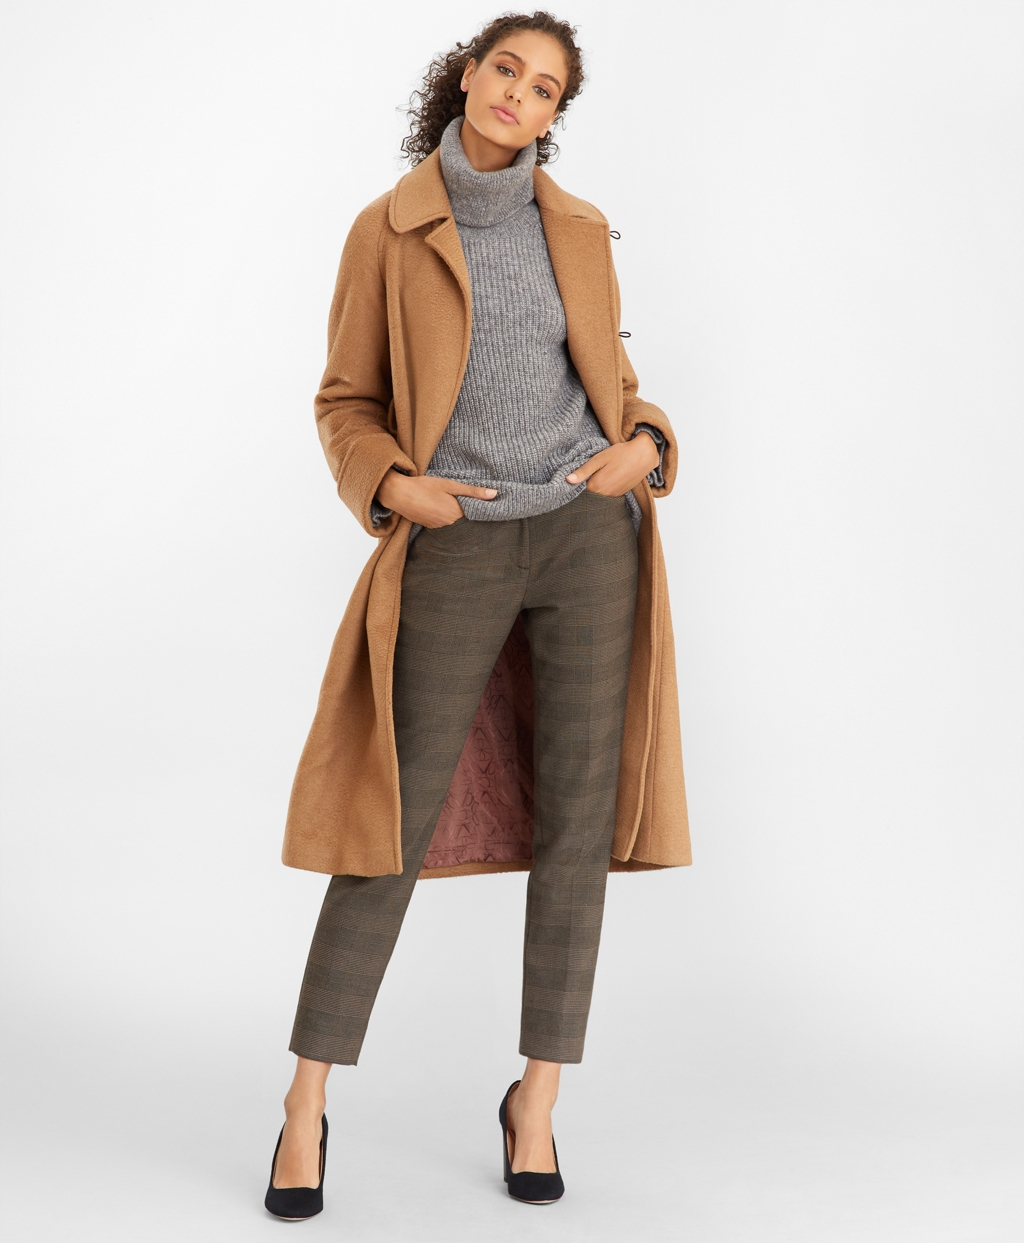 1930s Style Clothing and Fashion Brooks Brothers Womens Camel Hair Wrap Coat $908.60 AT vintagedancer.com